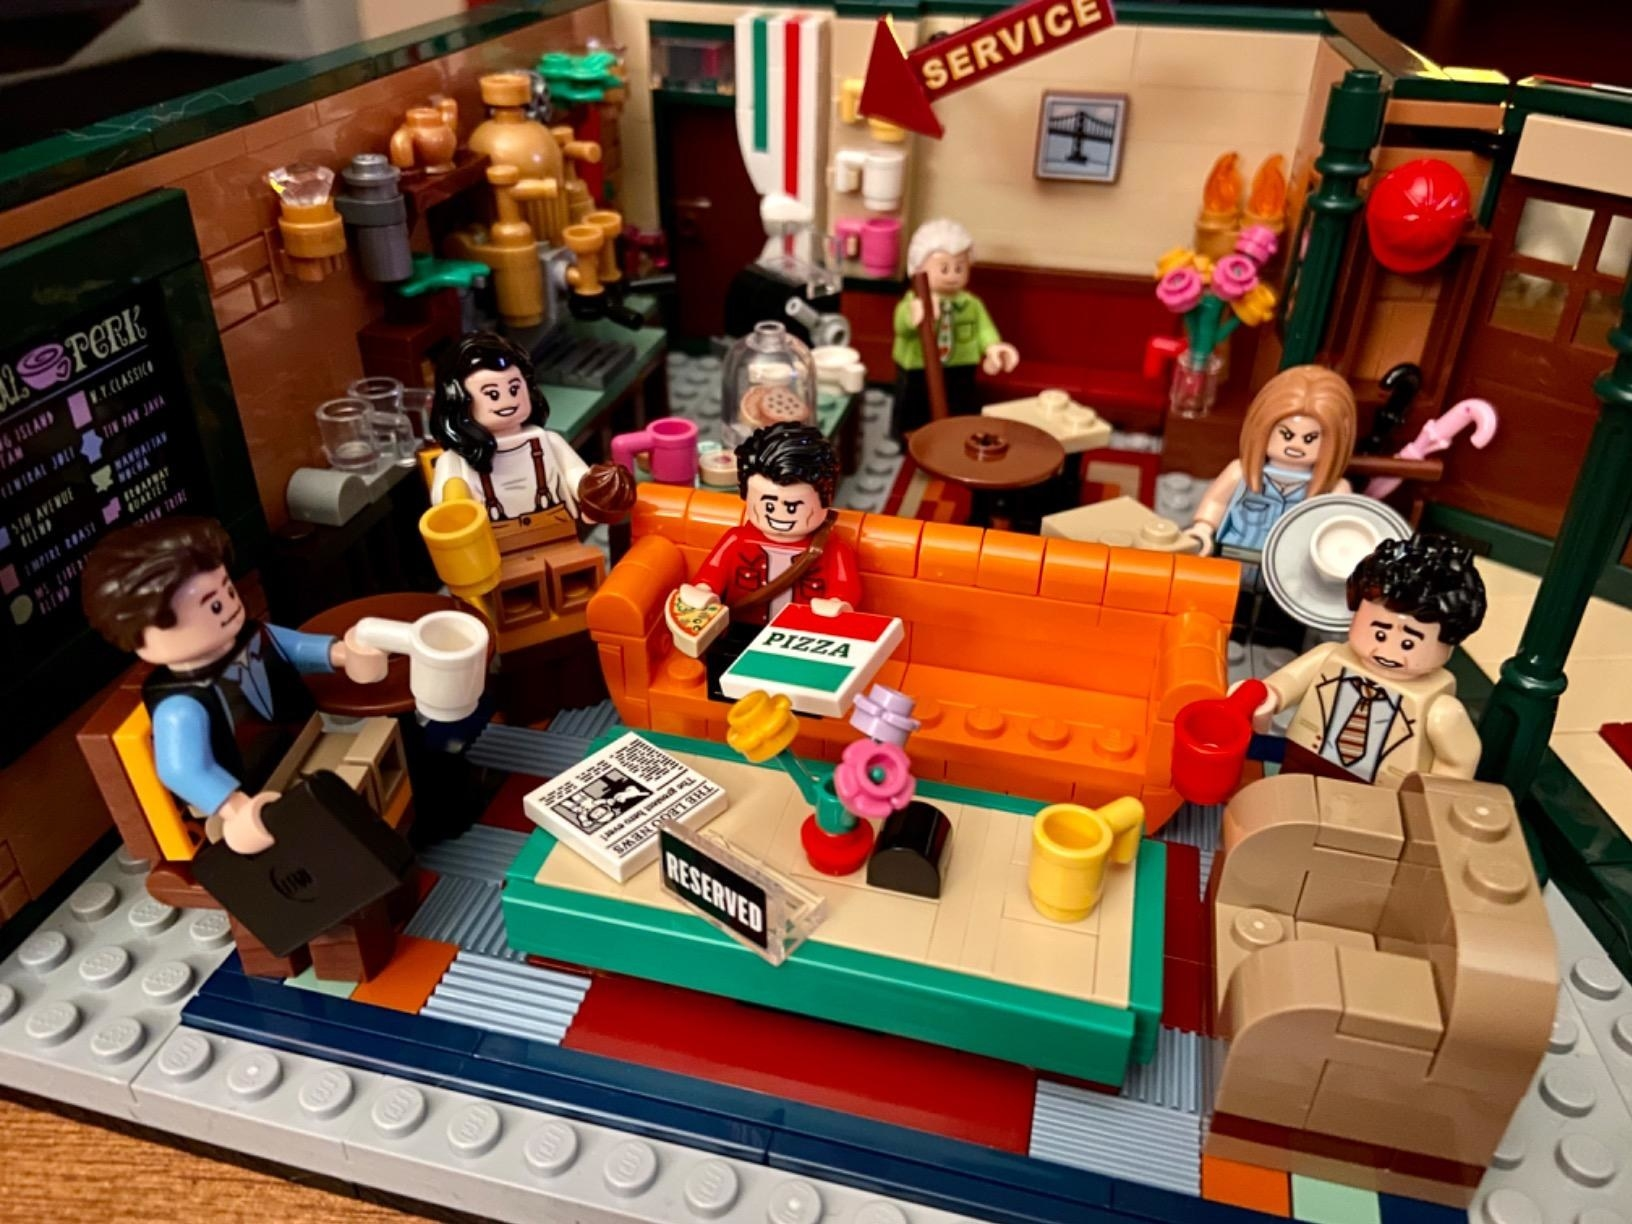 """A reviewer photo of the lego set complete with the cafe and characters from """"Friends"""""""